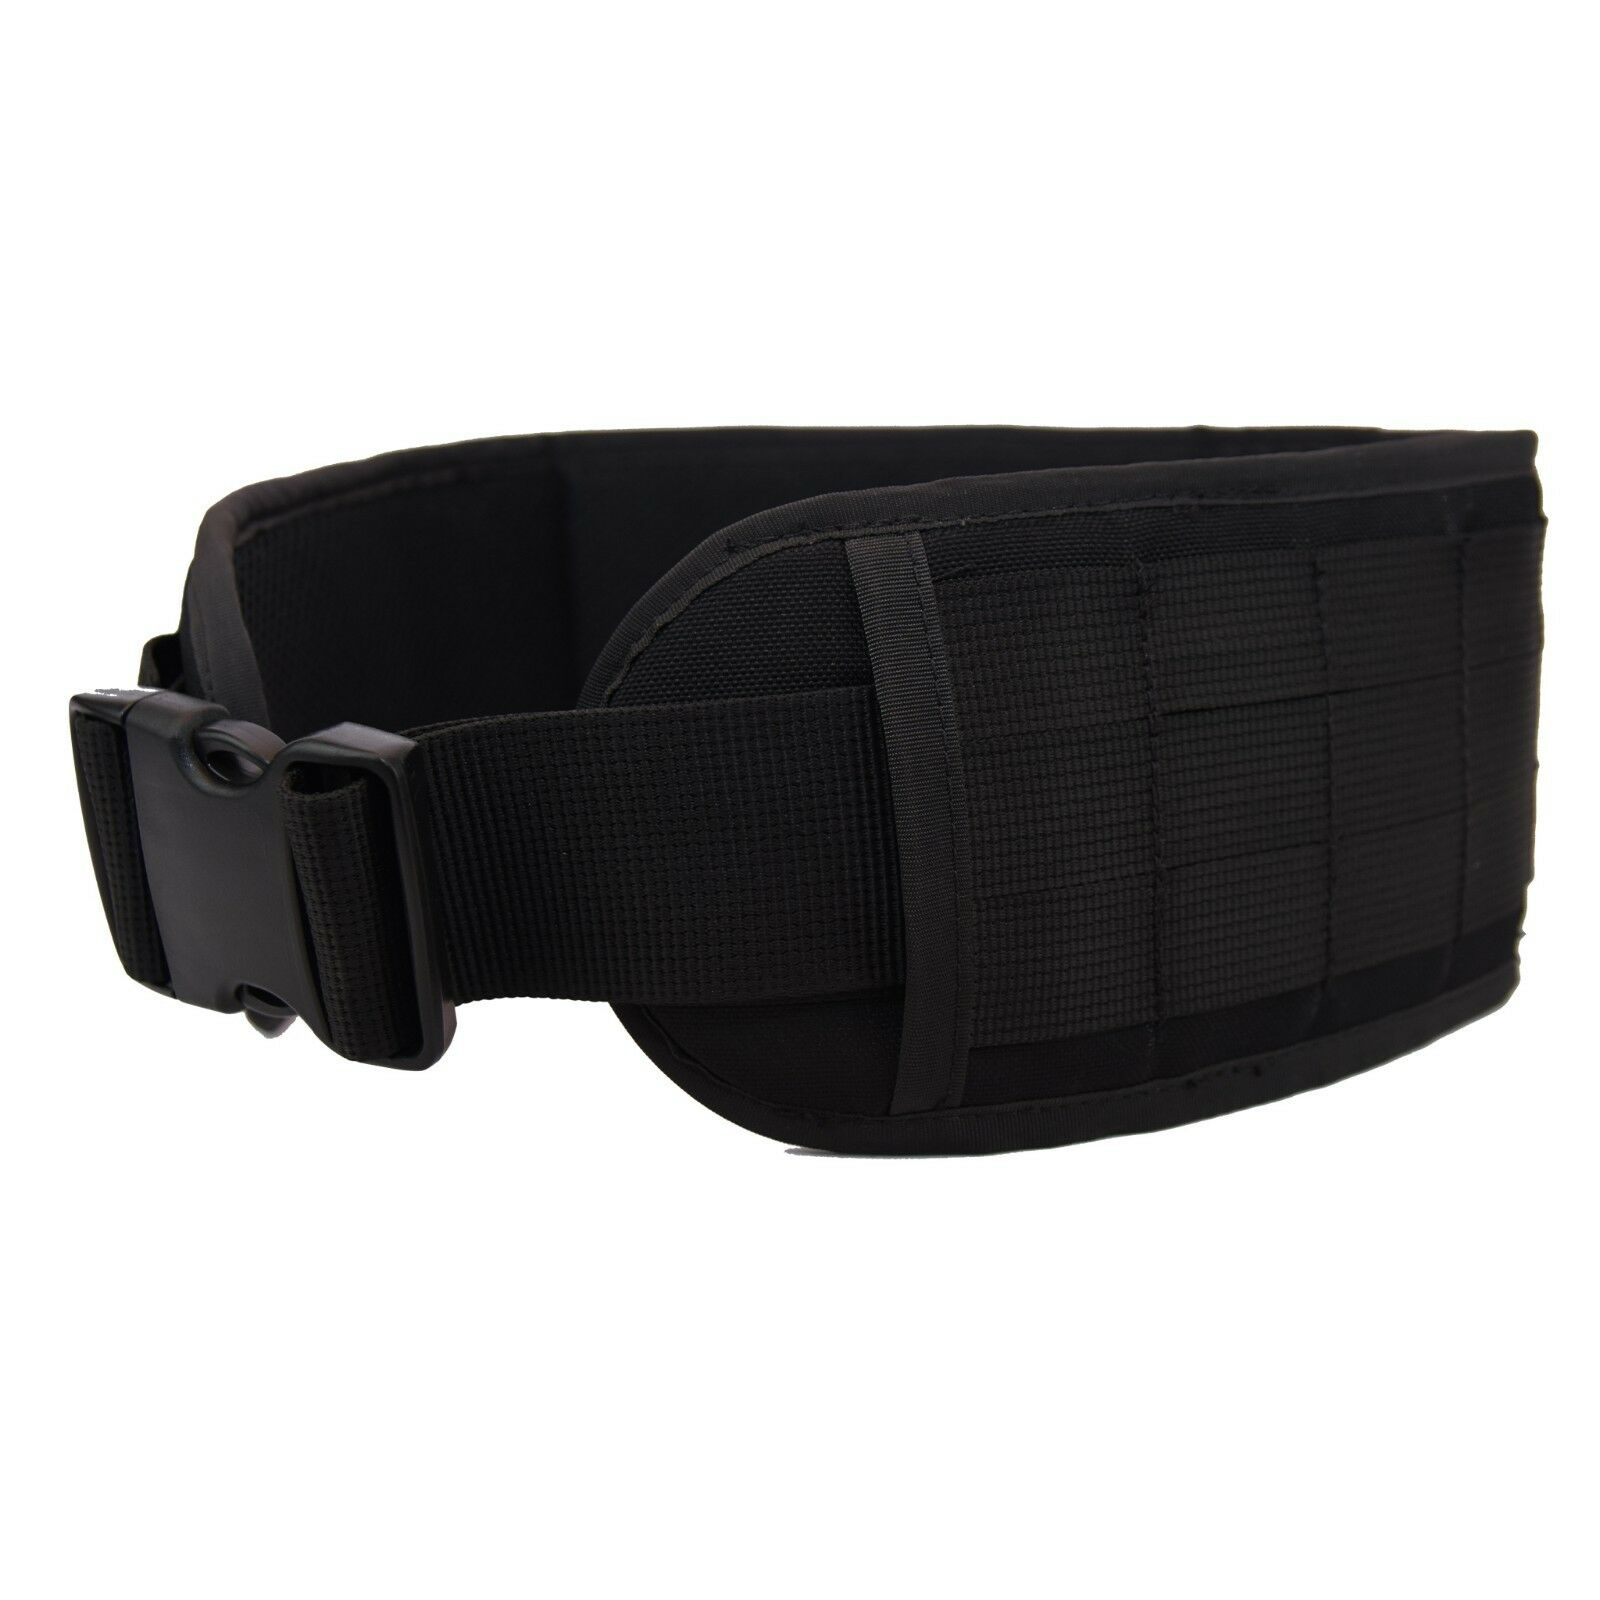 MENS MILITARY TACTICAL PADDED MOLLE WAIST BELT